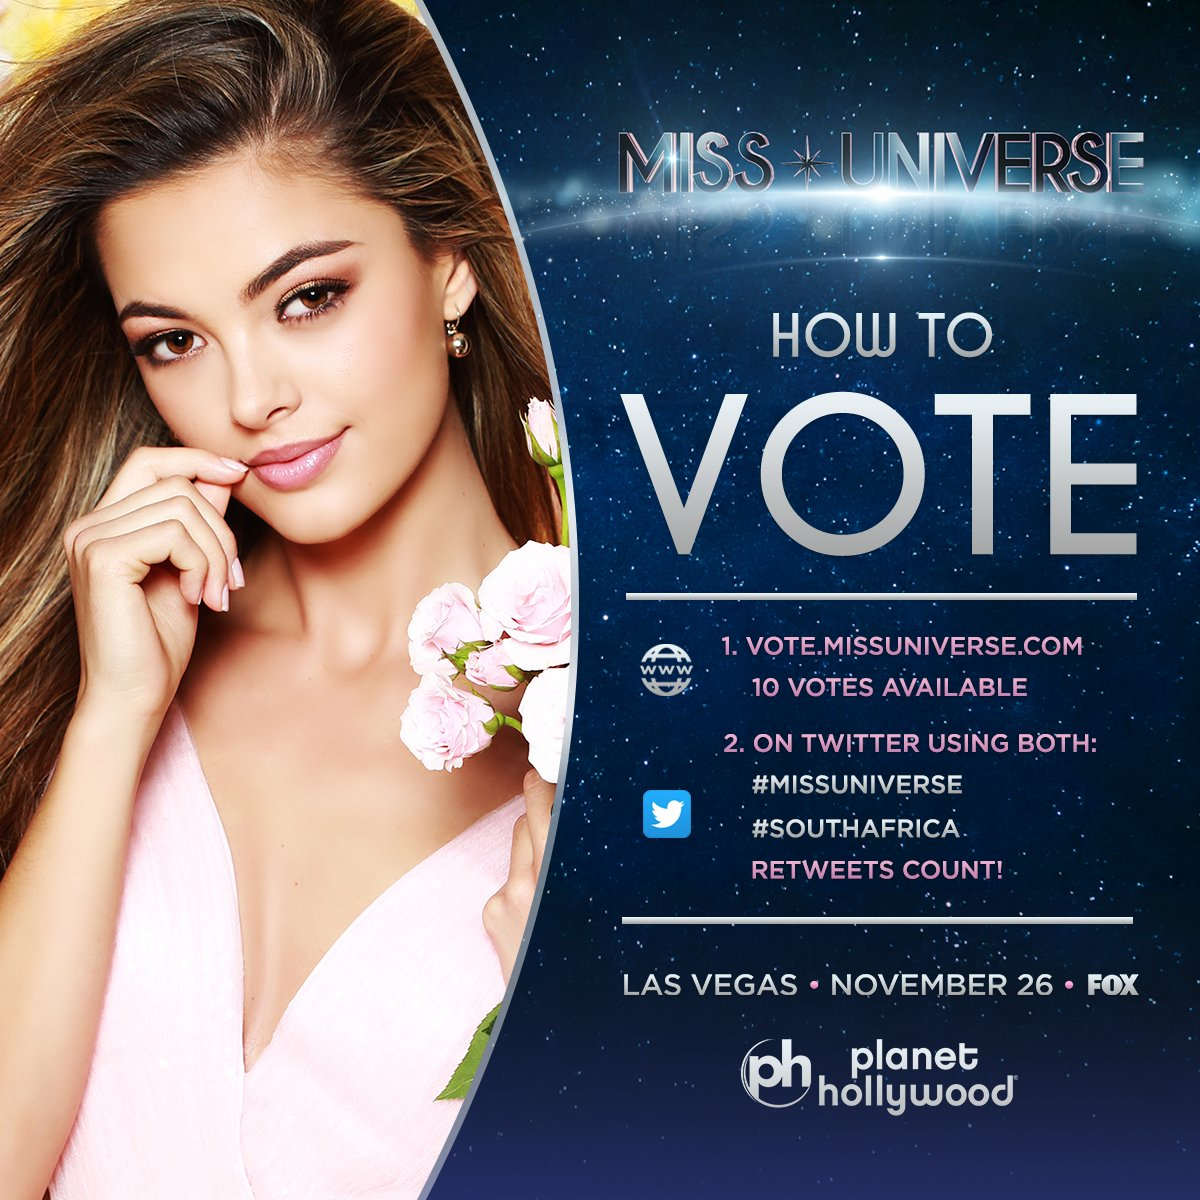 RT @GIven_madisei: #countryDuty  vote or RT #MissUniverse  #SouthAfrica https://t.co/23O7x5zvrh